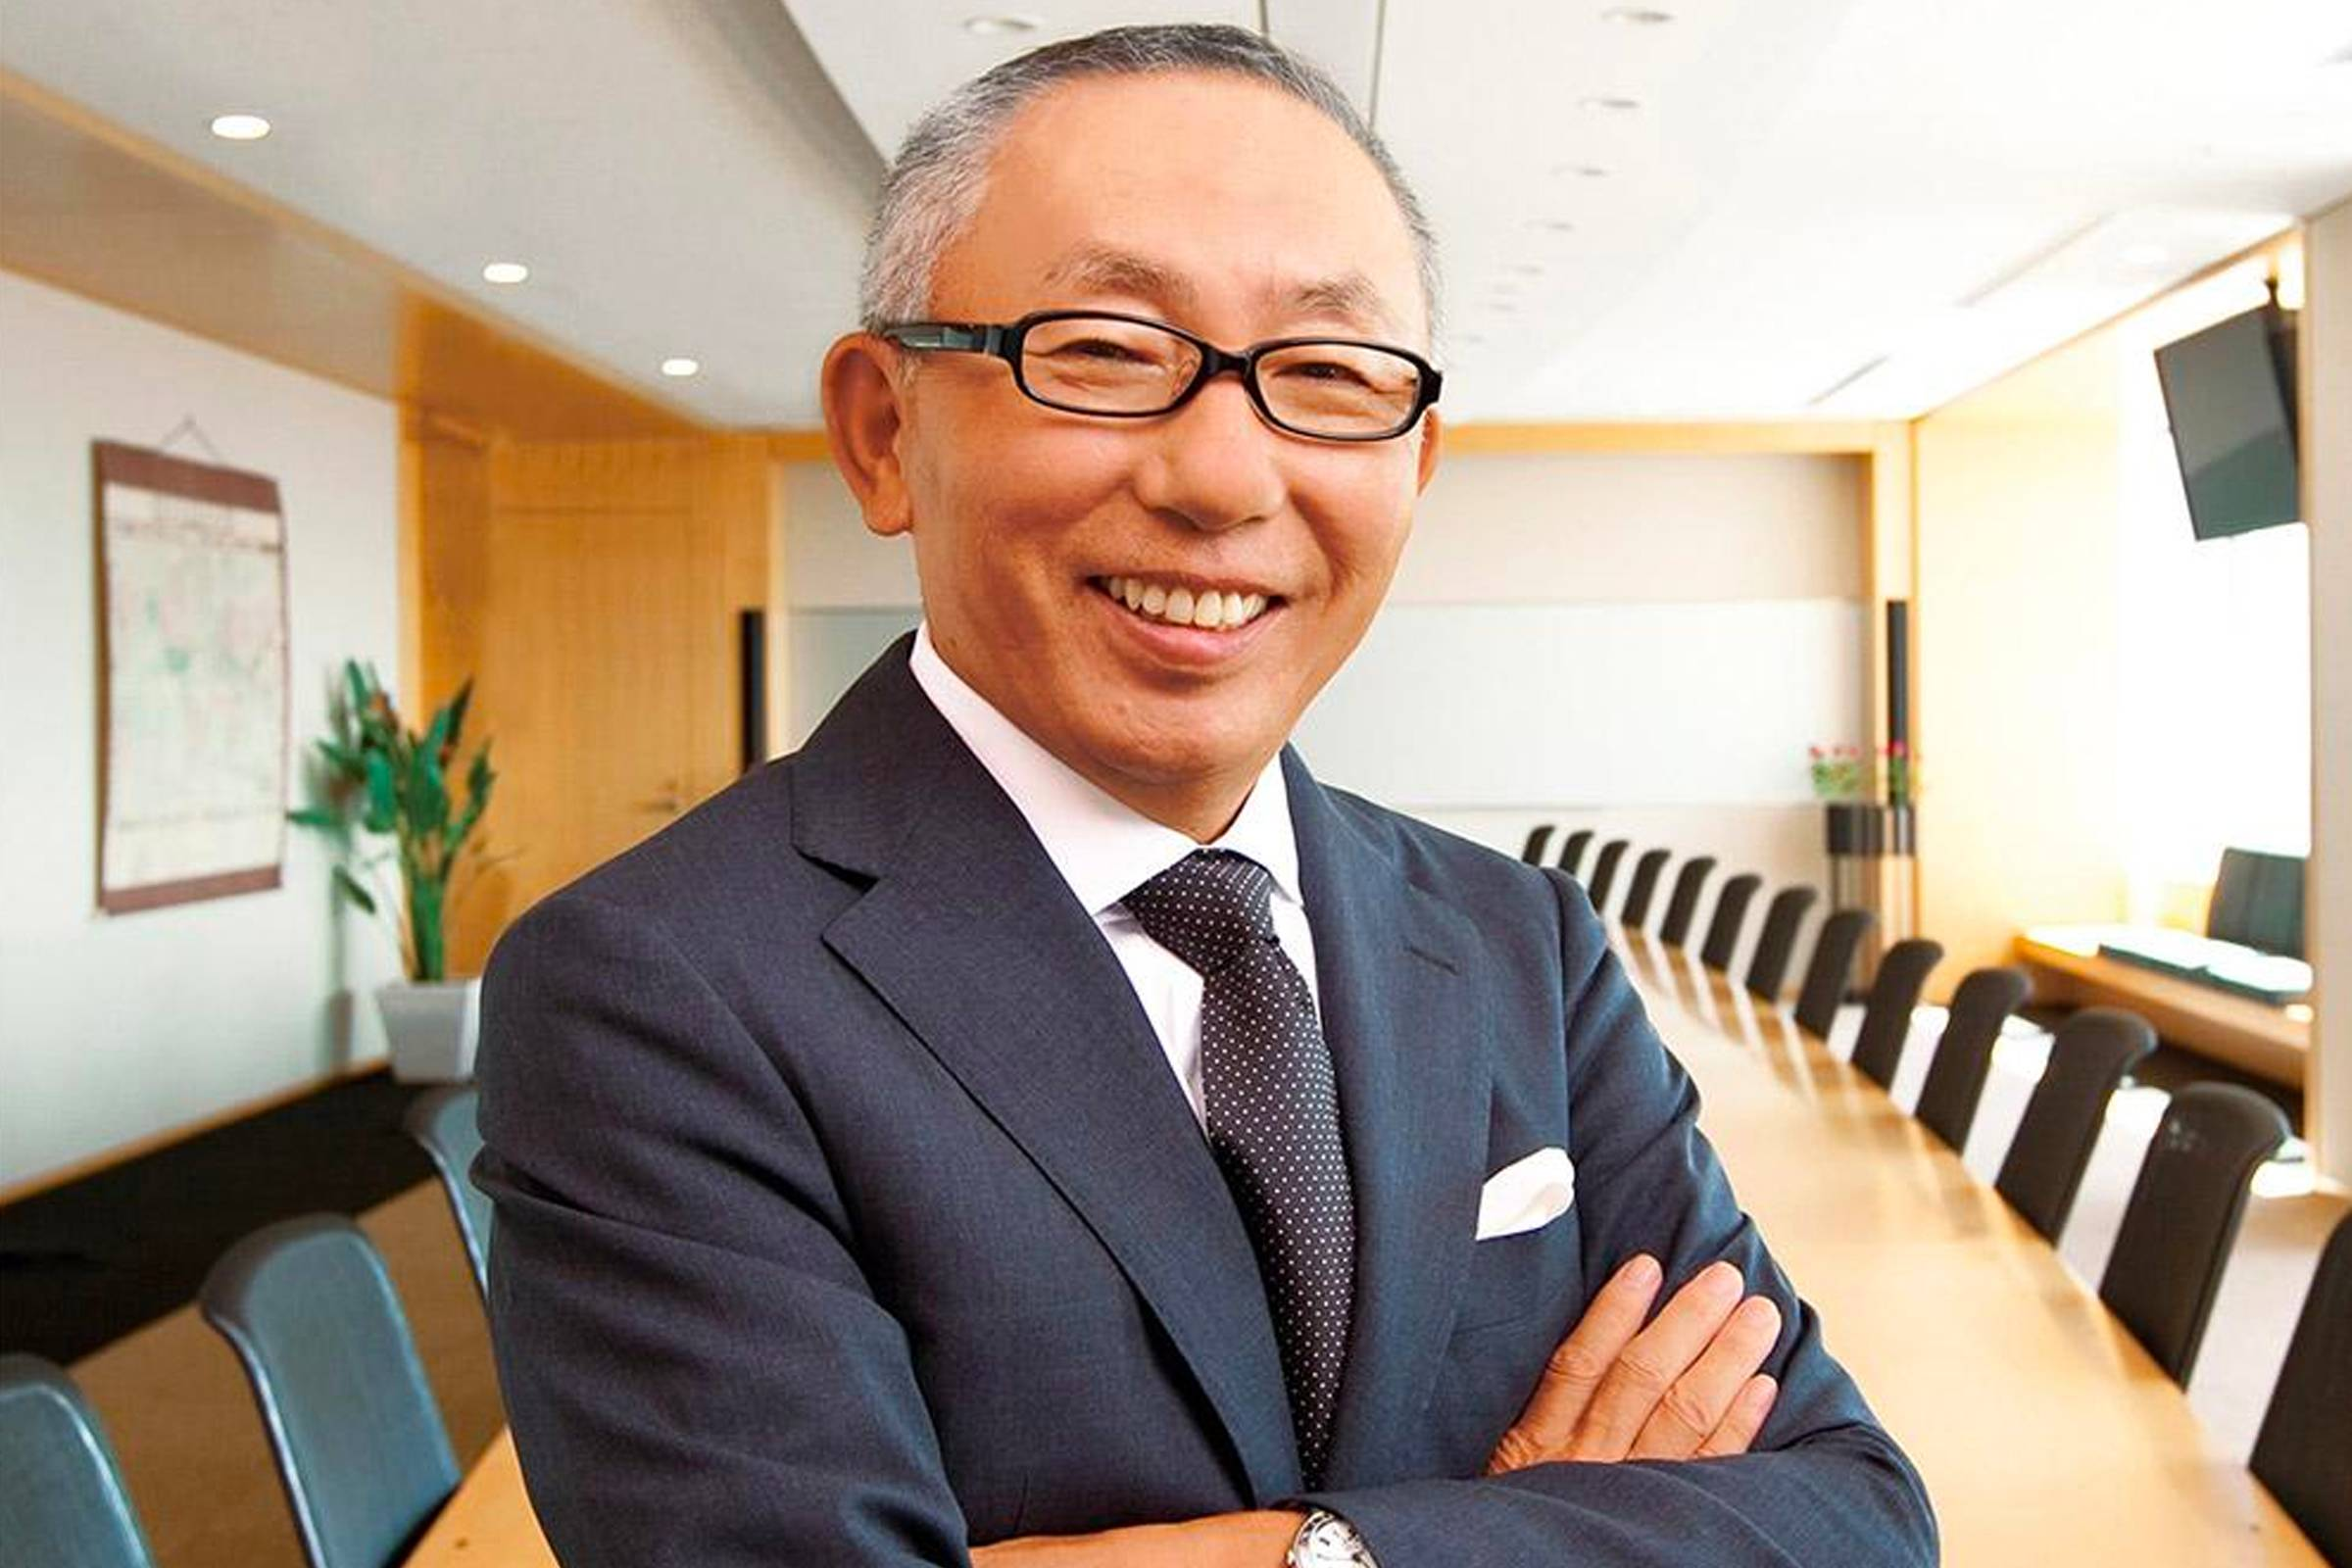 Tadashi Yanai, founder and president of Fast Retailing and Uniqlo